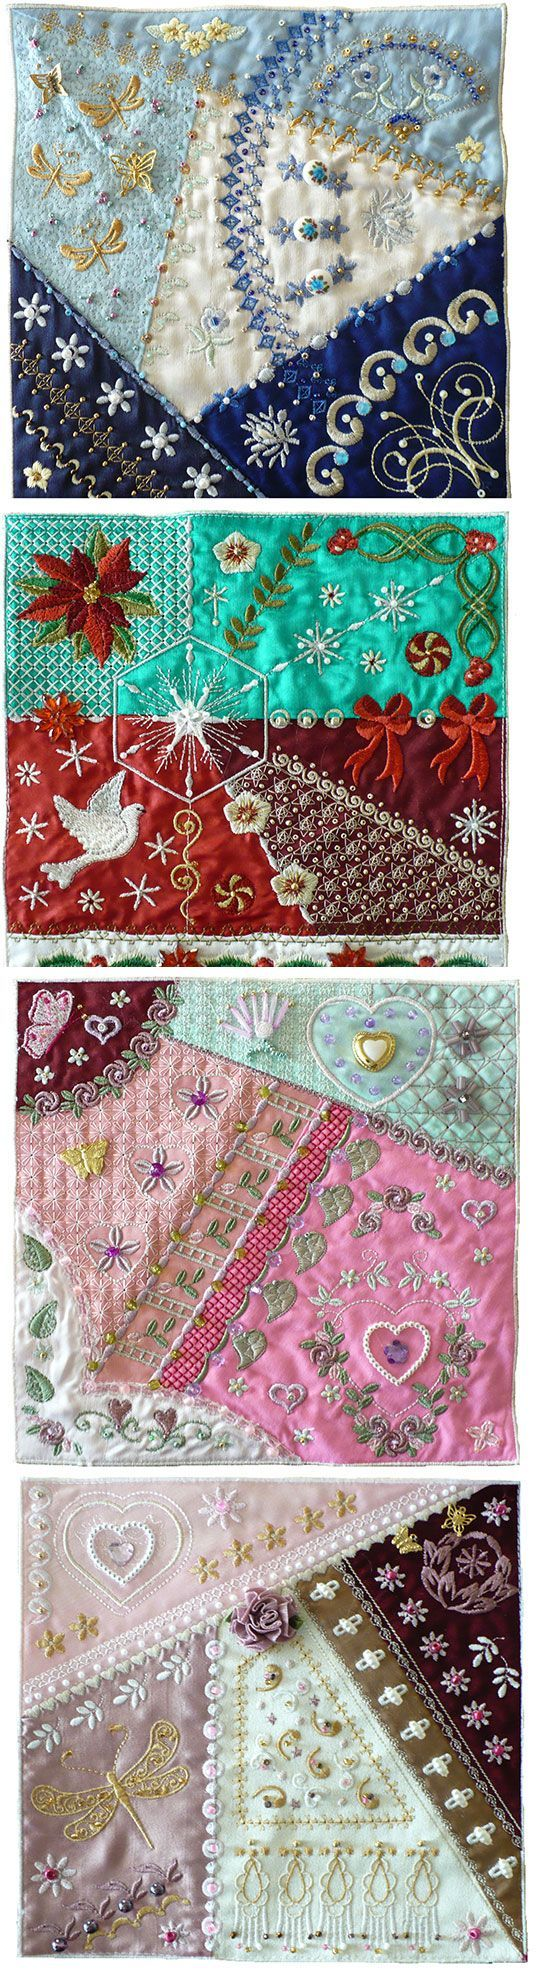 More lovely quilt blocks from Graceful embroidery!: